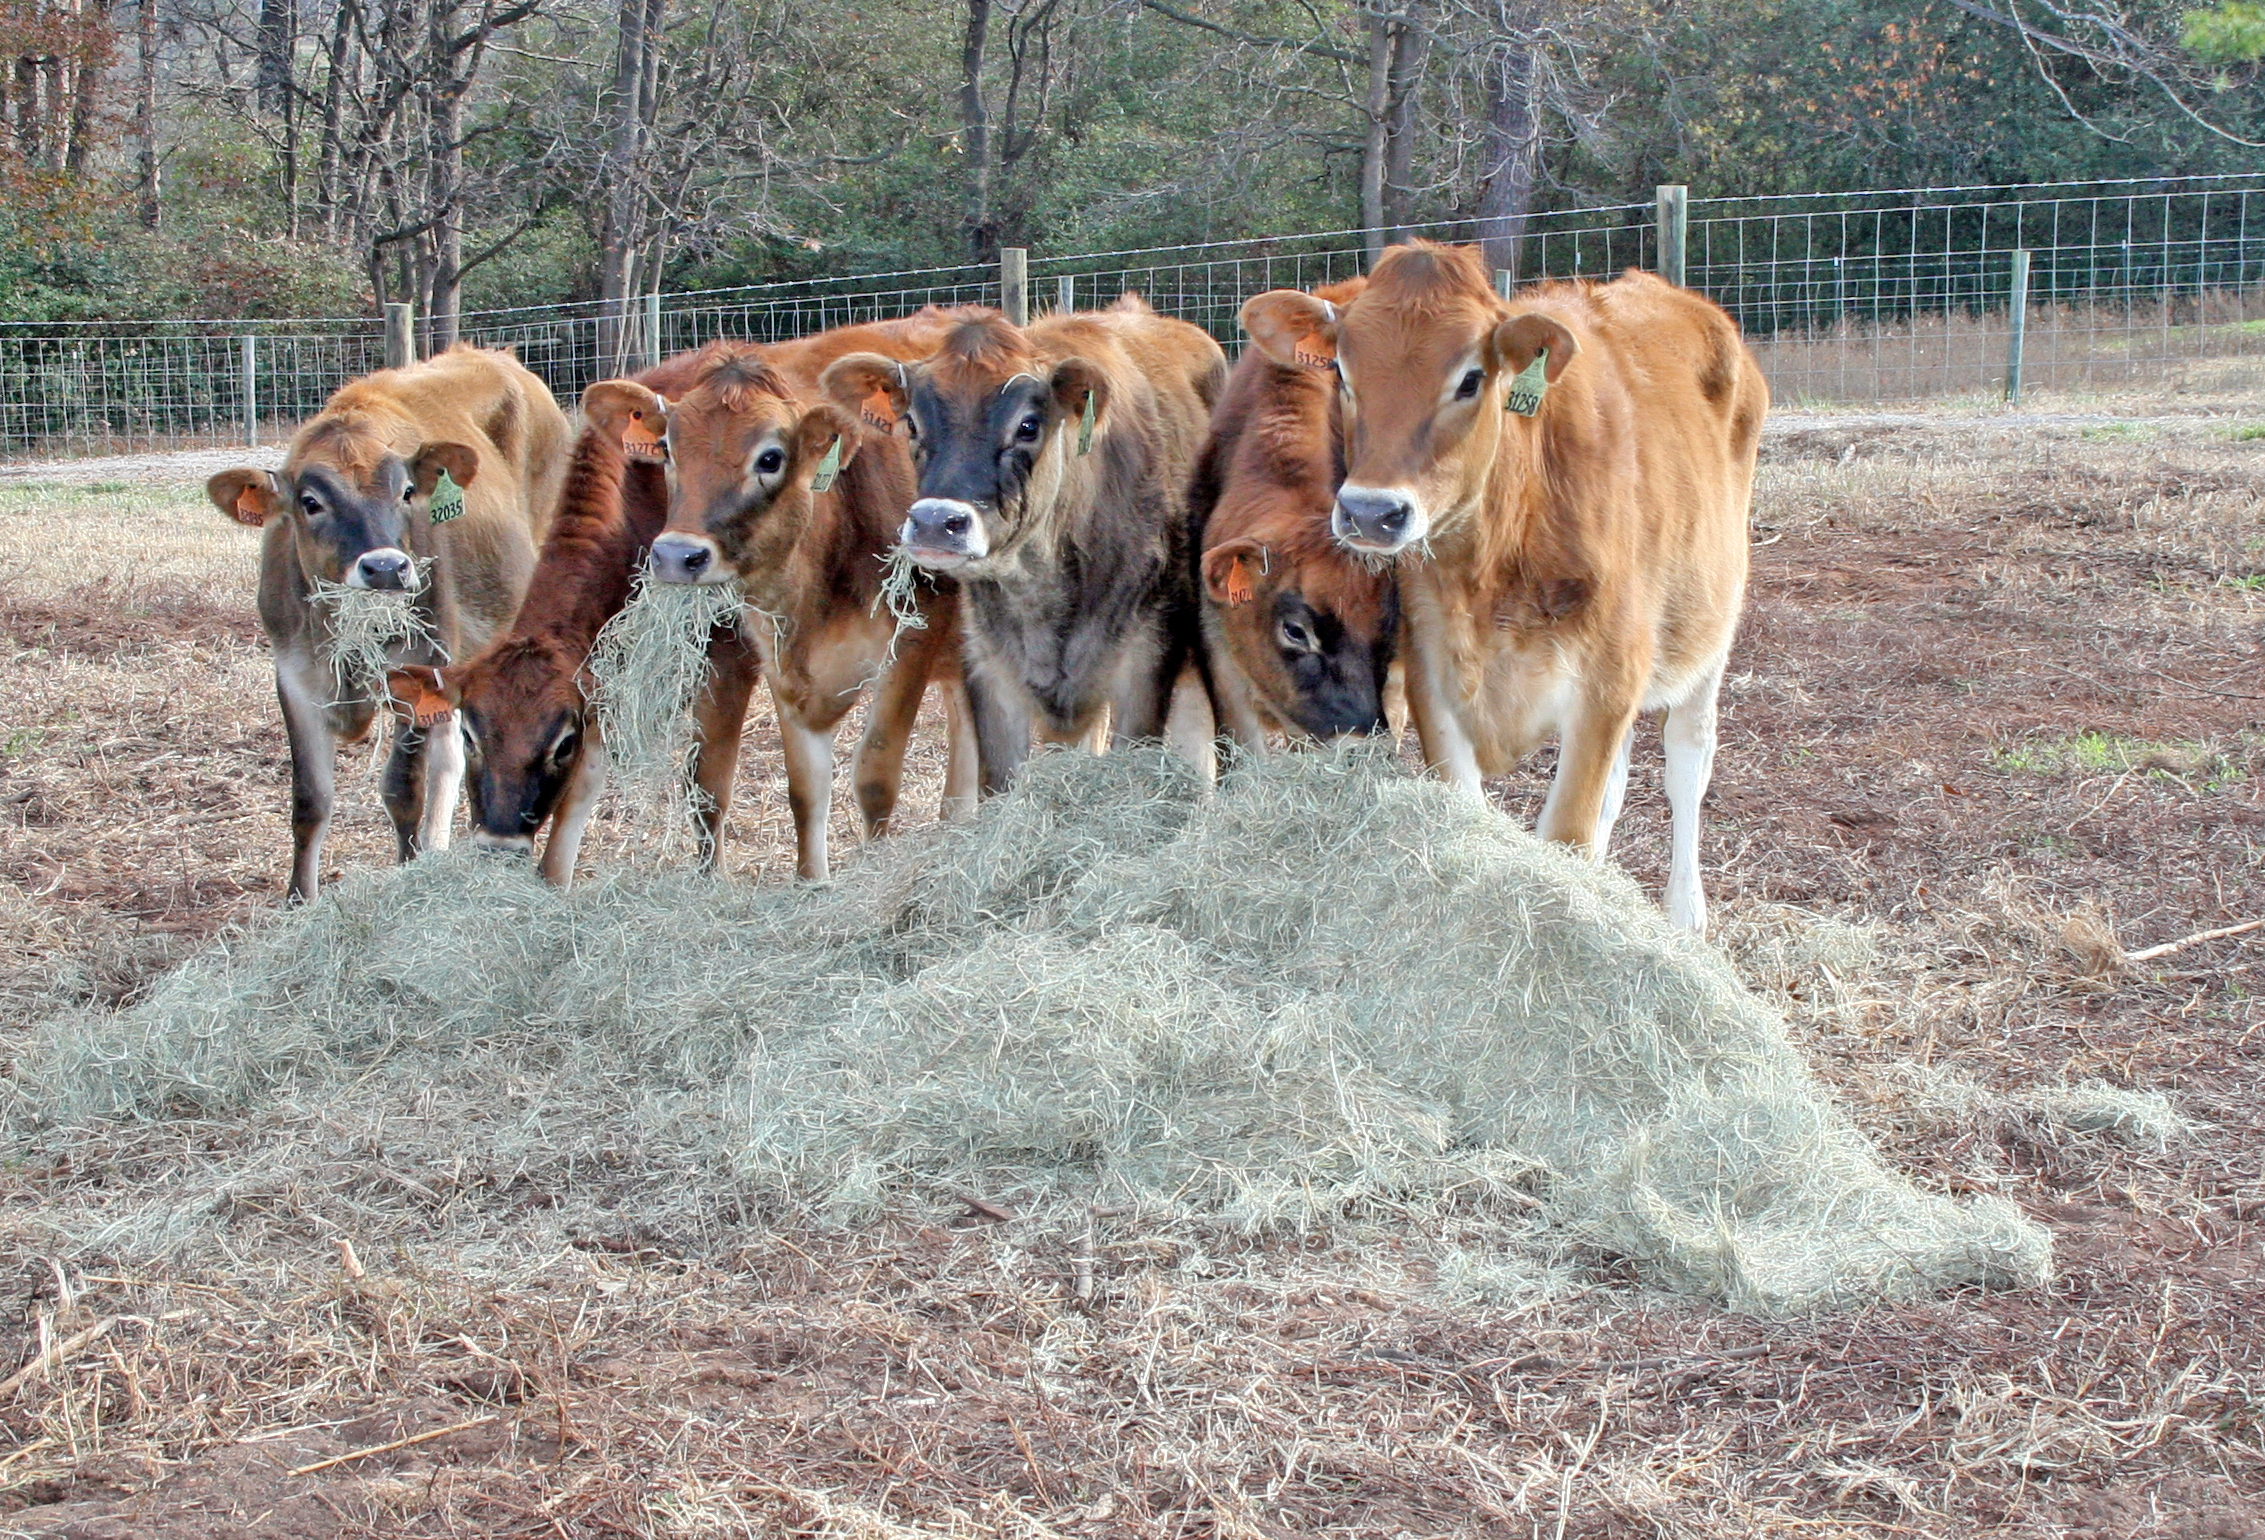 The UGA Teaching Dairy welcomed six Jersey heifers in early December. The cattle were a gift from 1985 CAES Animal and Dairy Science graduate C.A. Russell, owner of the Yosemite Dairy in California.